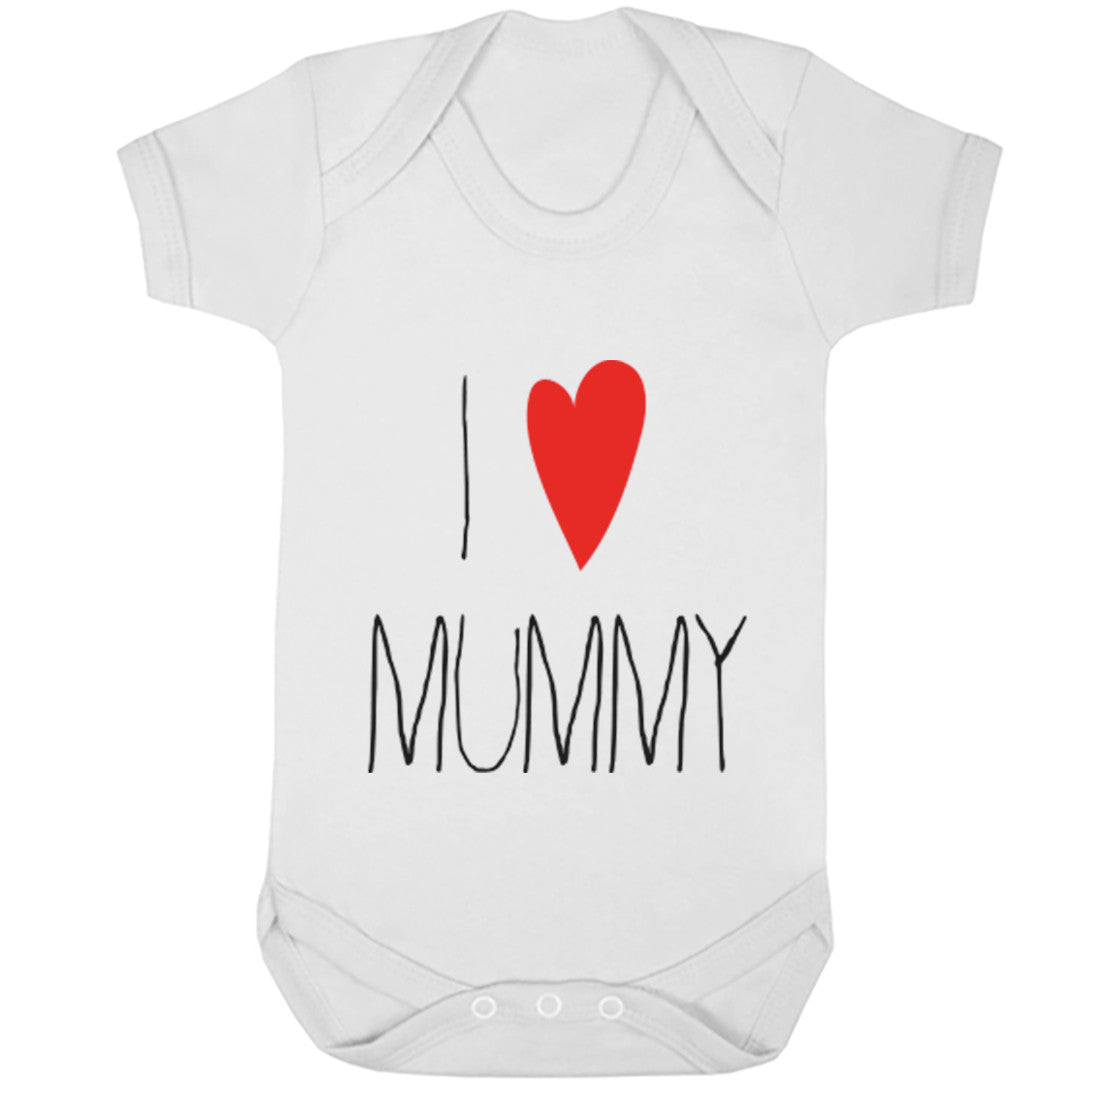 I Heart Mummy Baby Vest K0343 - Illustrated Identity Ltd.